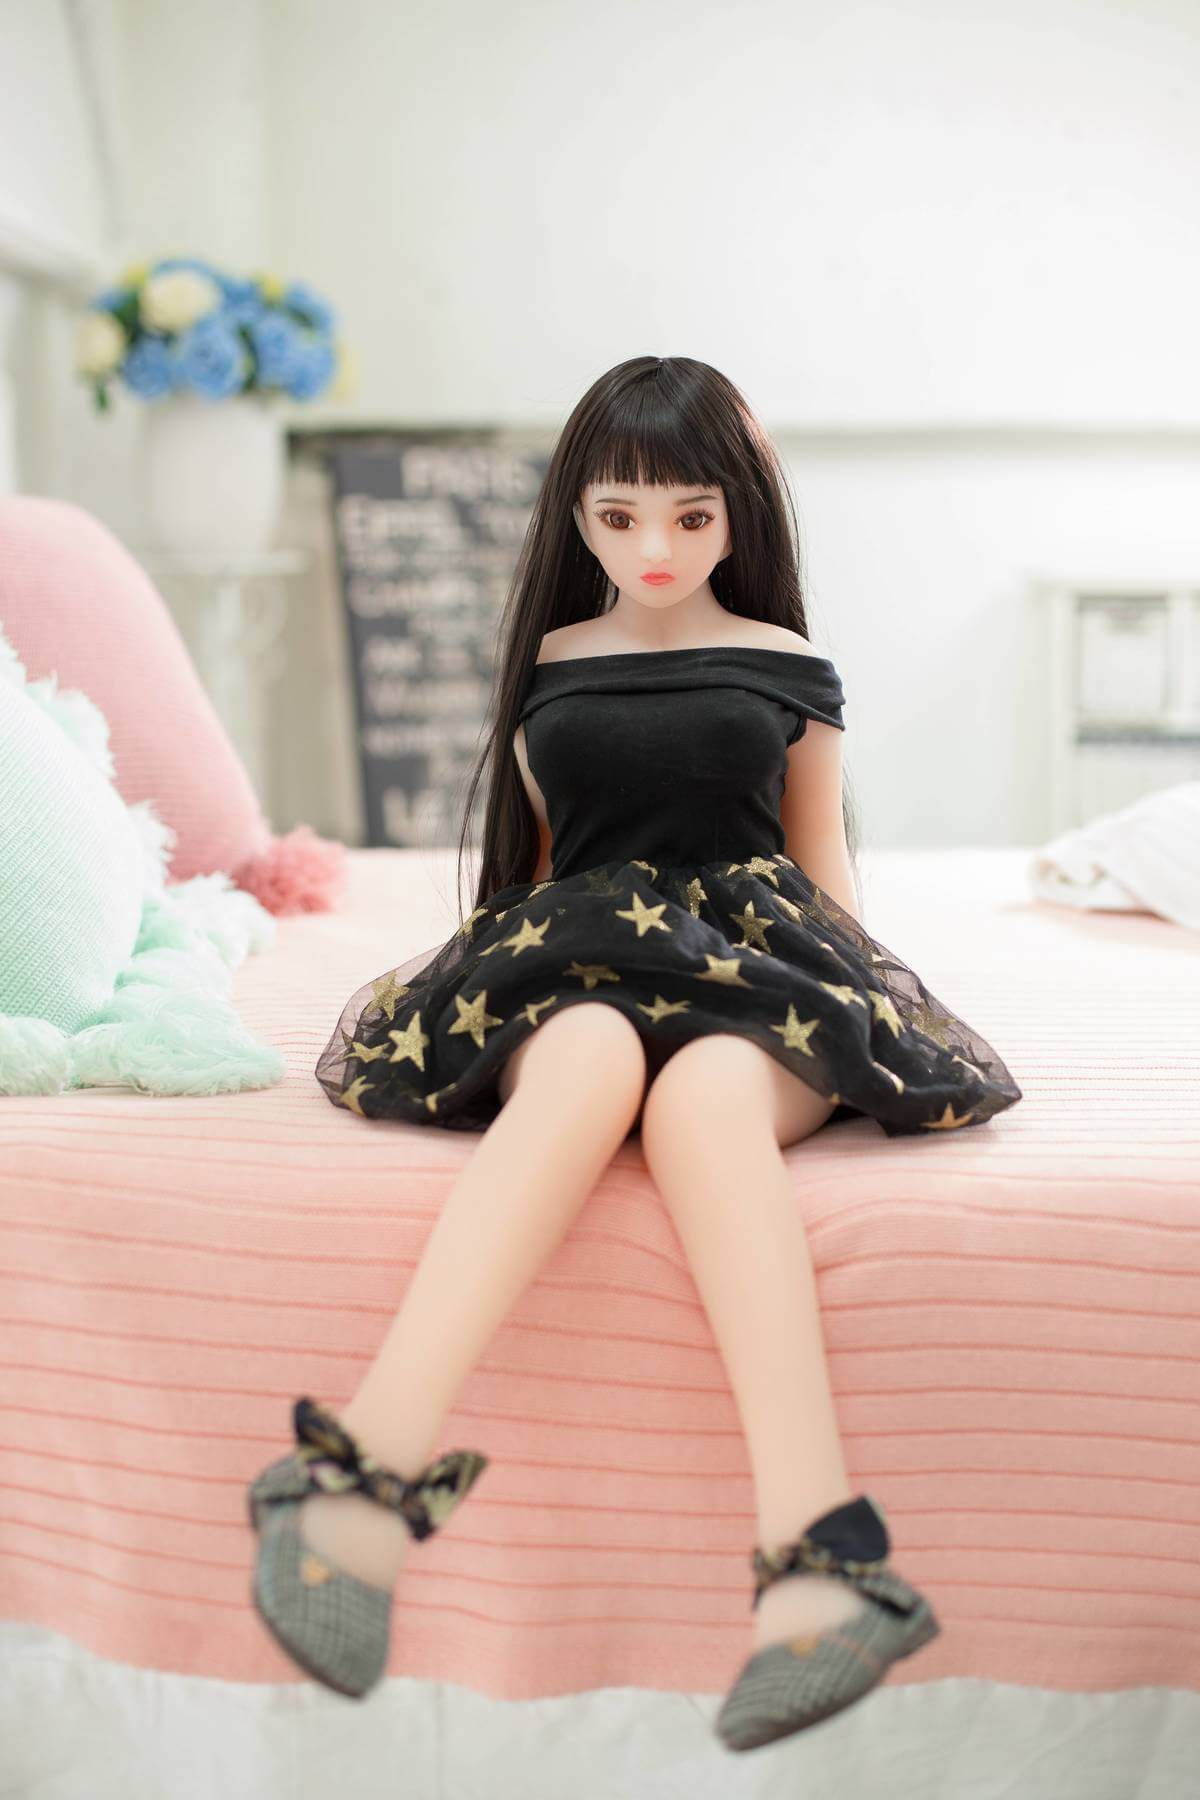 Smallest Love Doll - Michelle